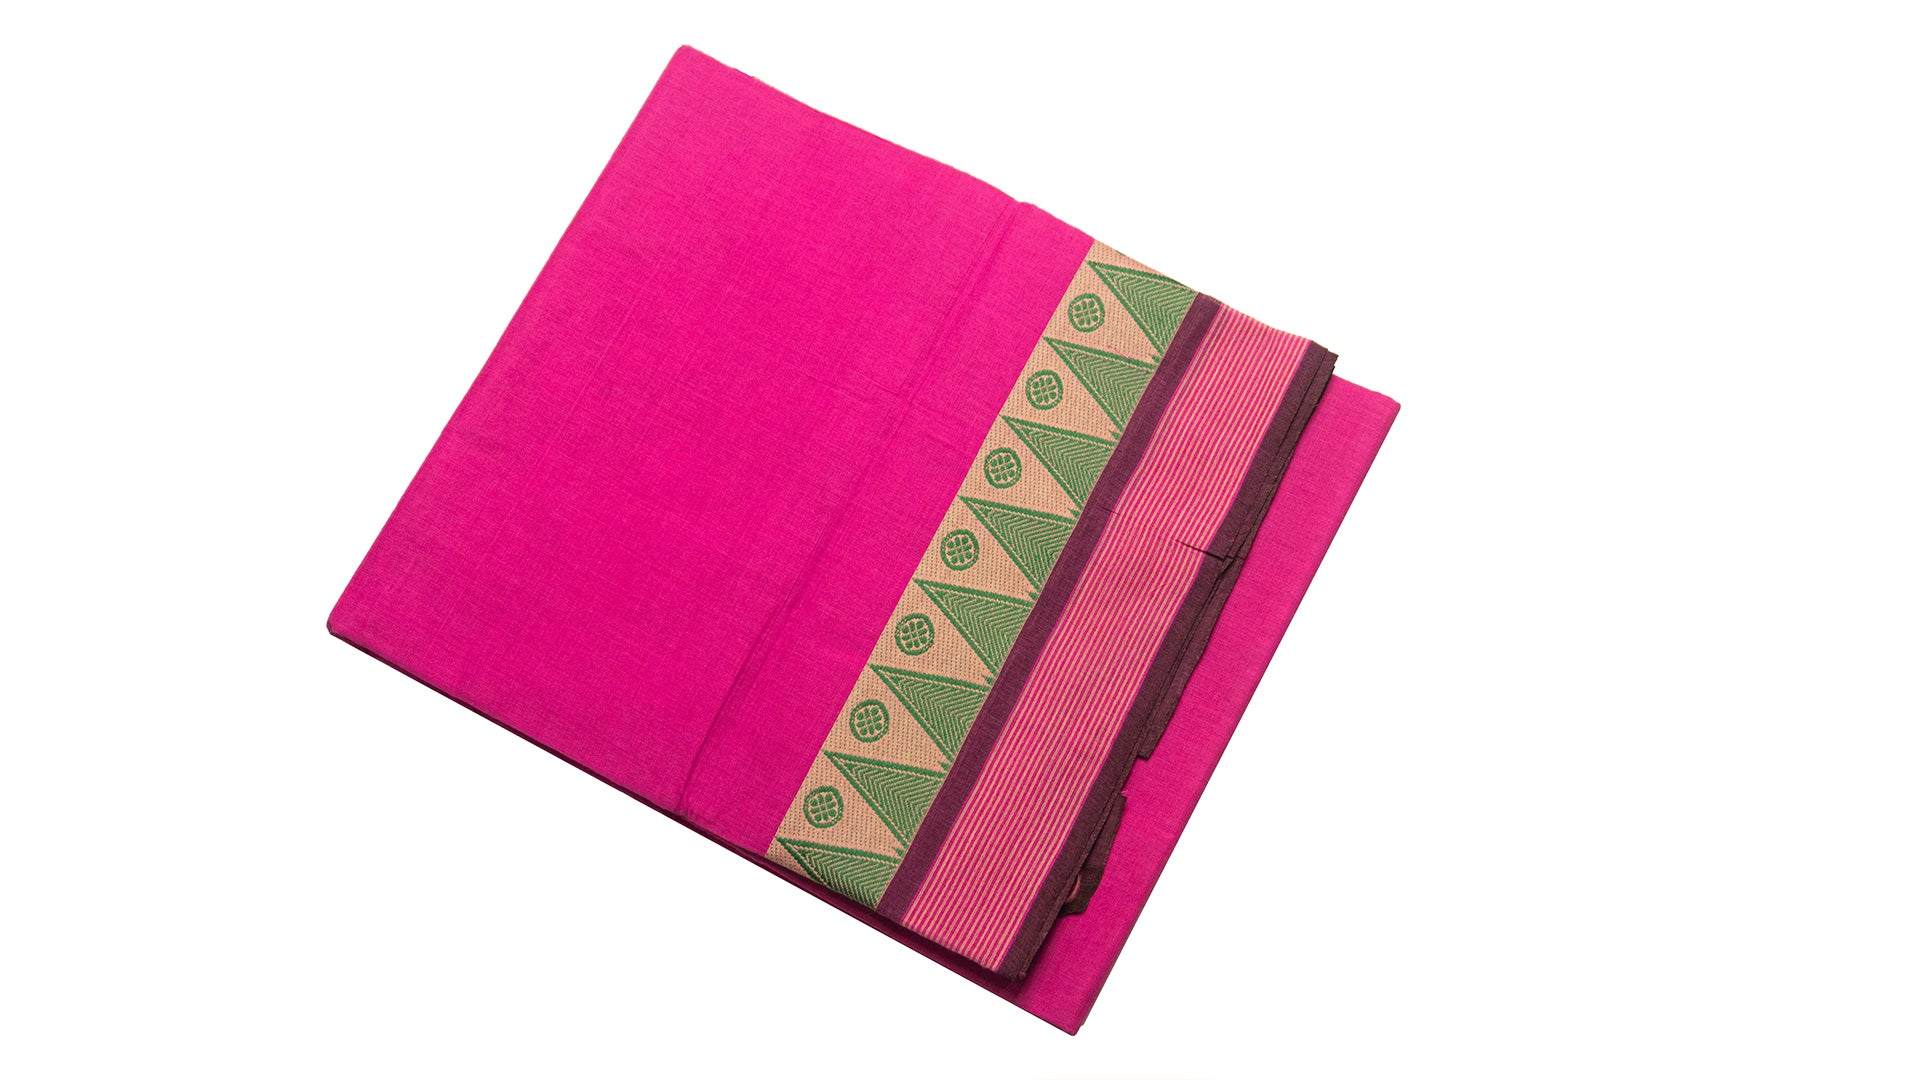 39426  Pure Cotton Saree thread temple border Pink with Green border